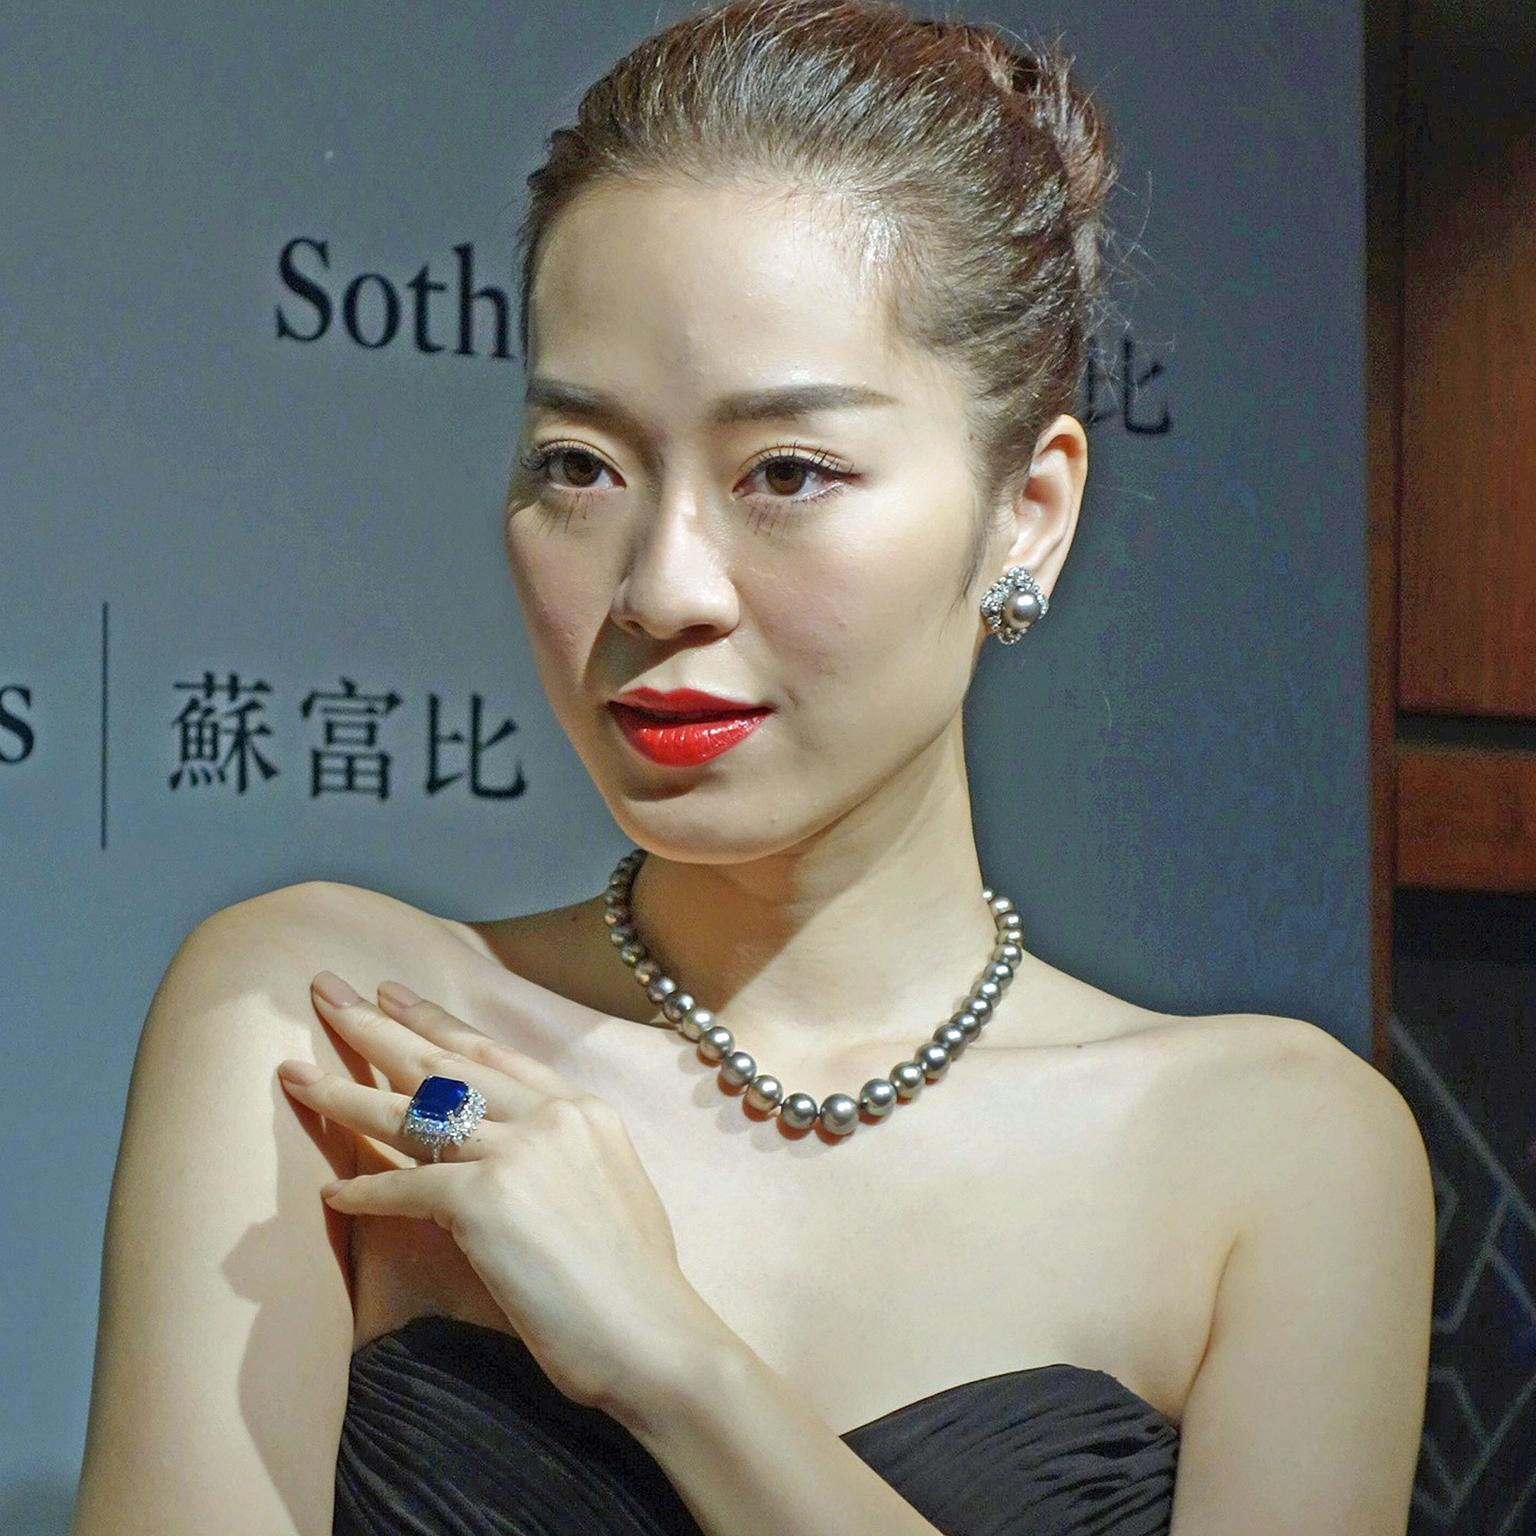 Sotheby's press preview sept 9 model wearing Cowdray pearls